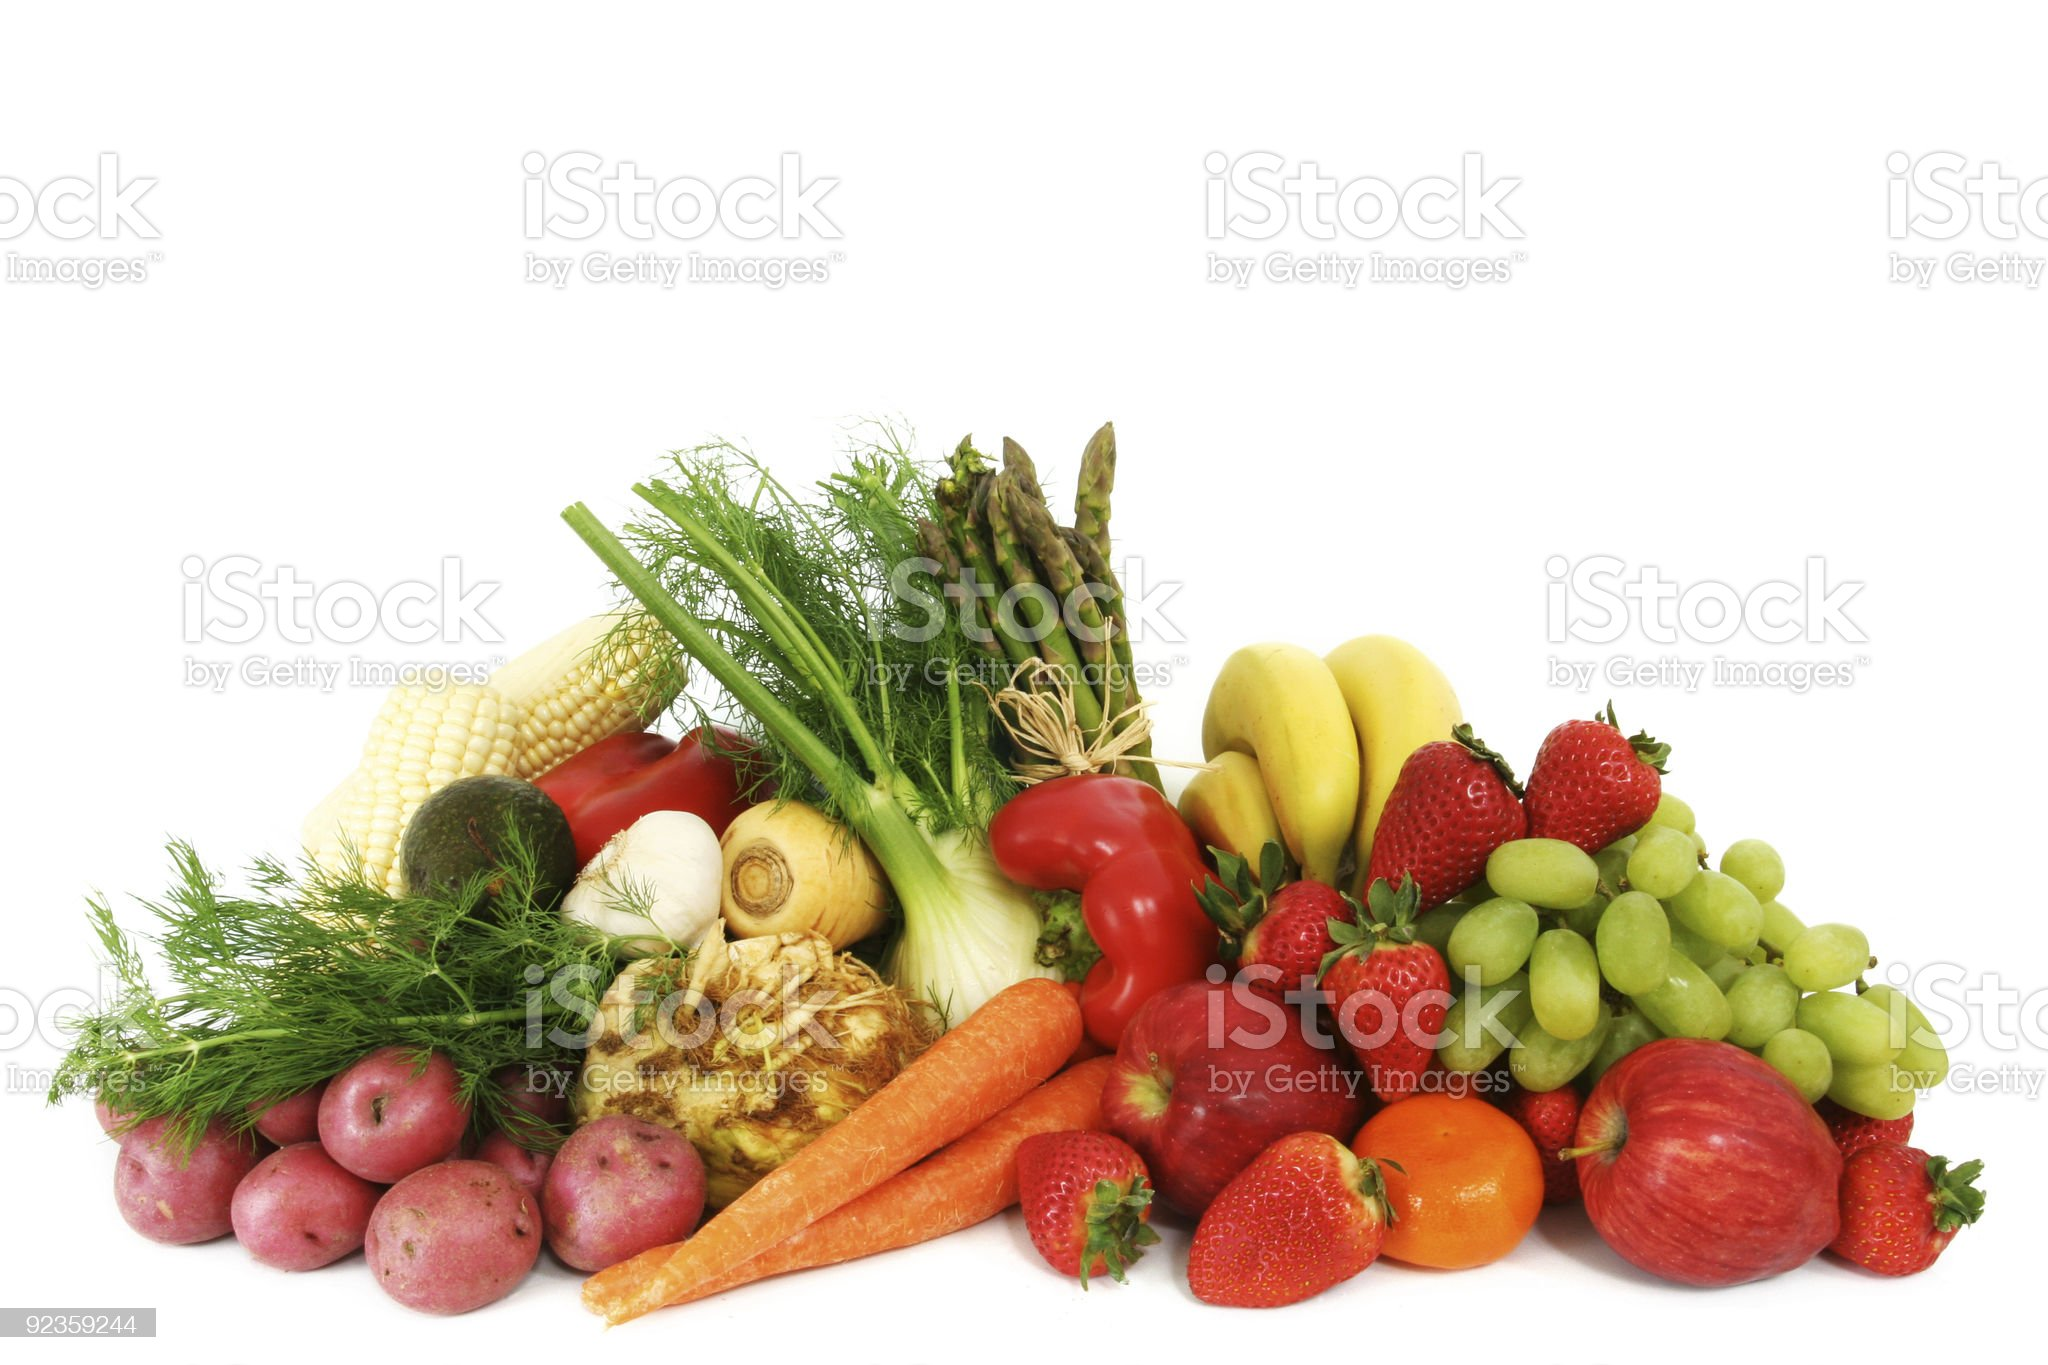 Fresh fruit and vegetables royalty-free stock photo